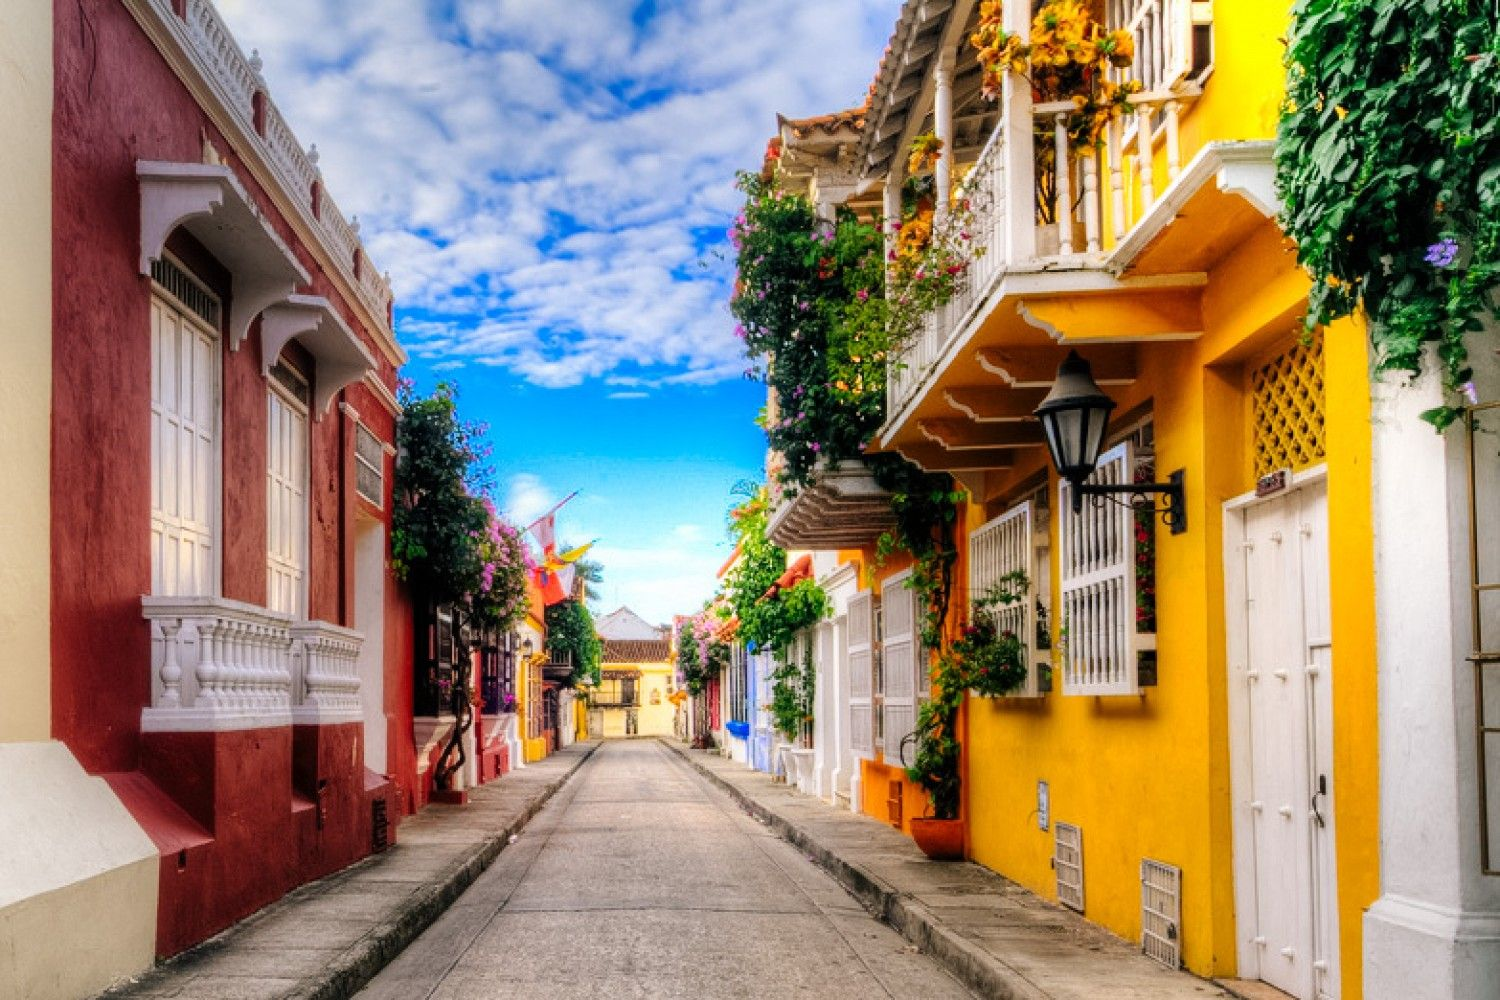 Images of  CARTAGENA DE INDIAS